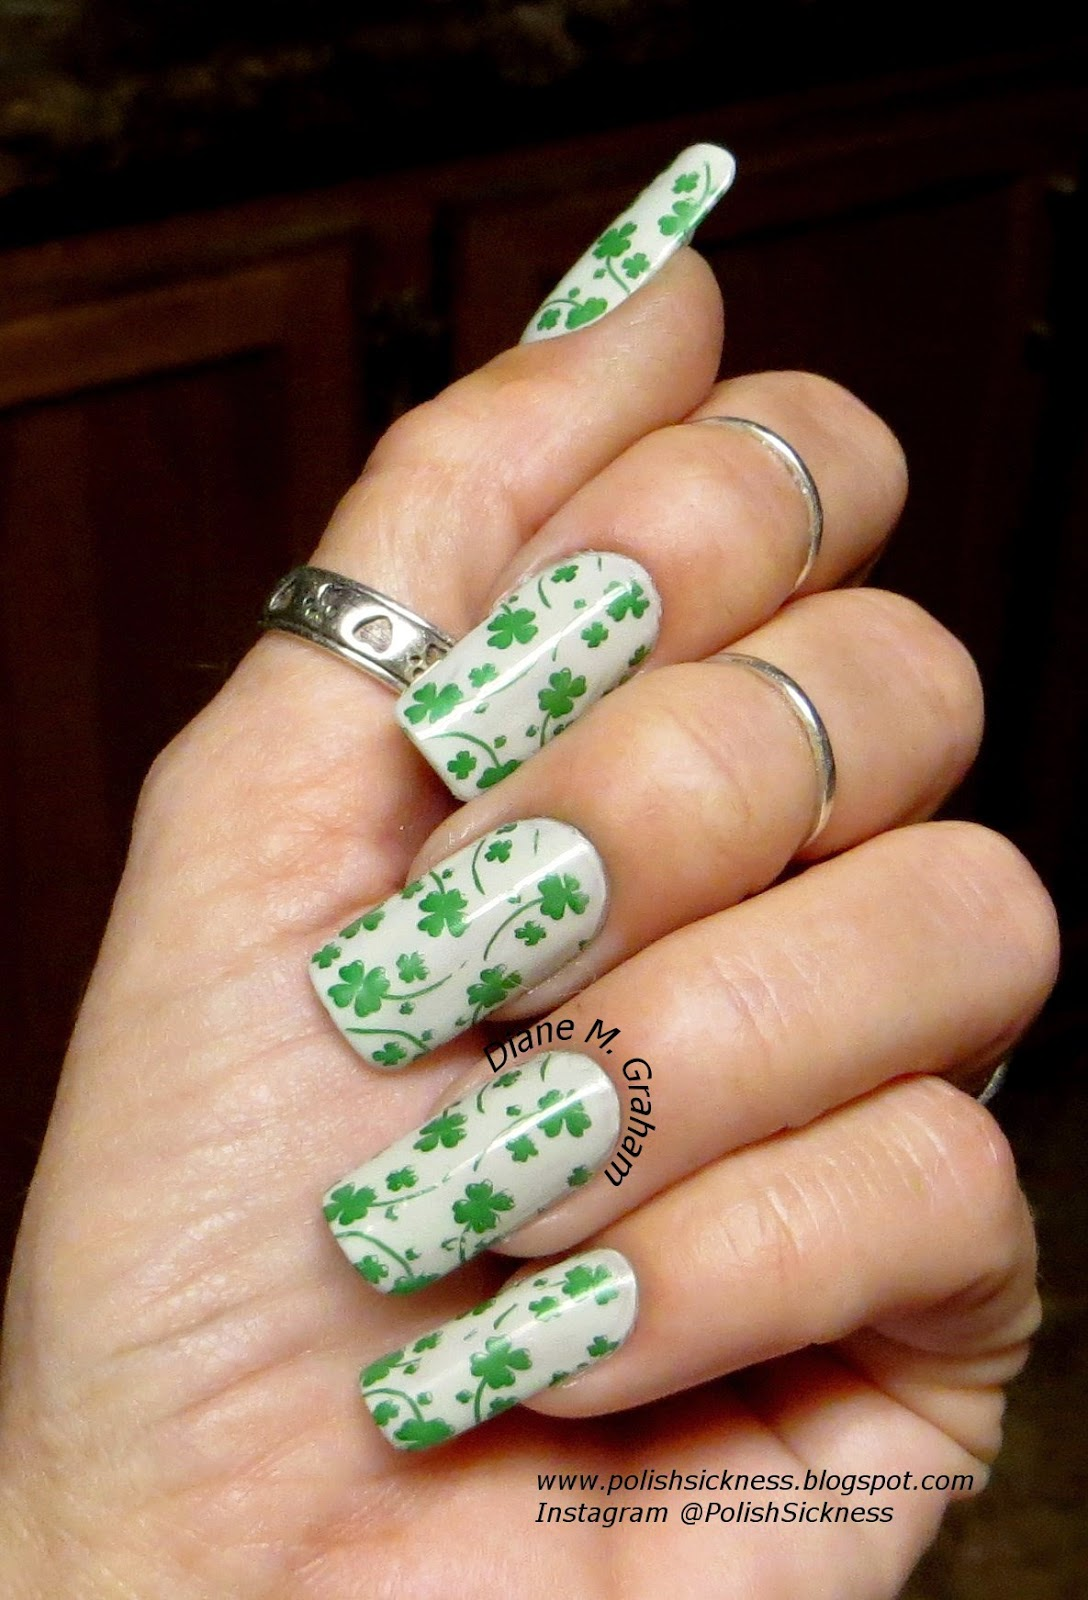 Essie Absolutely Shore, Barielle Date Night, FUN 13 shamrock stamp, St. Patrick's